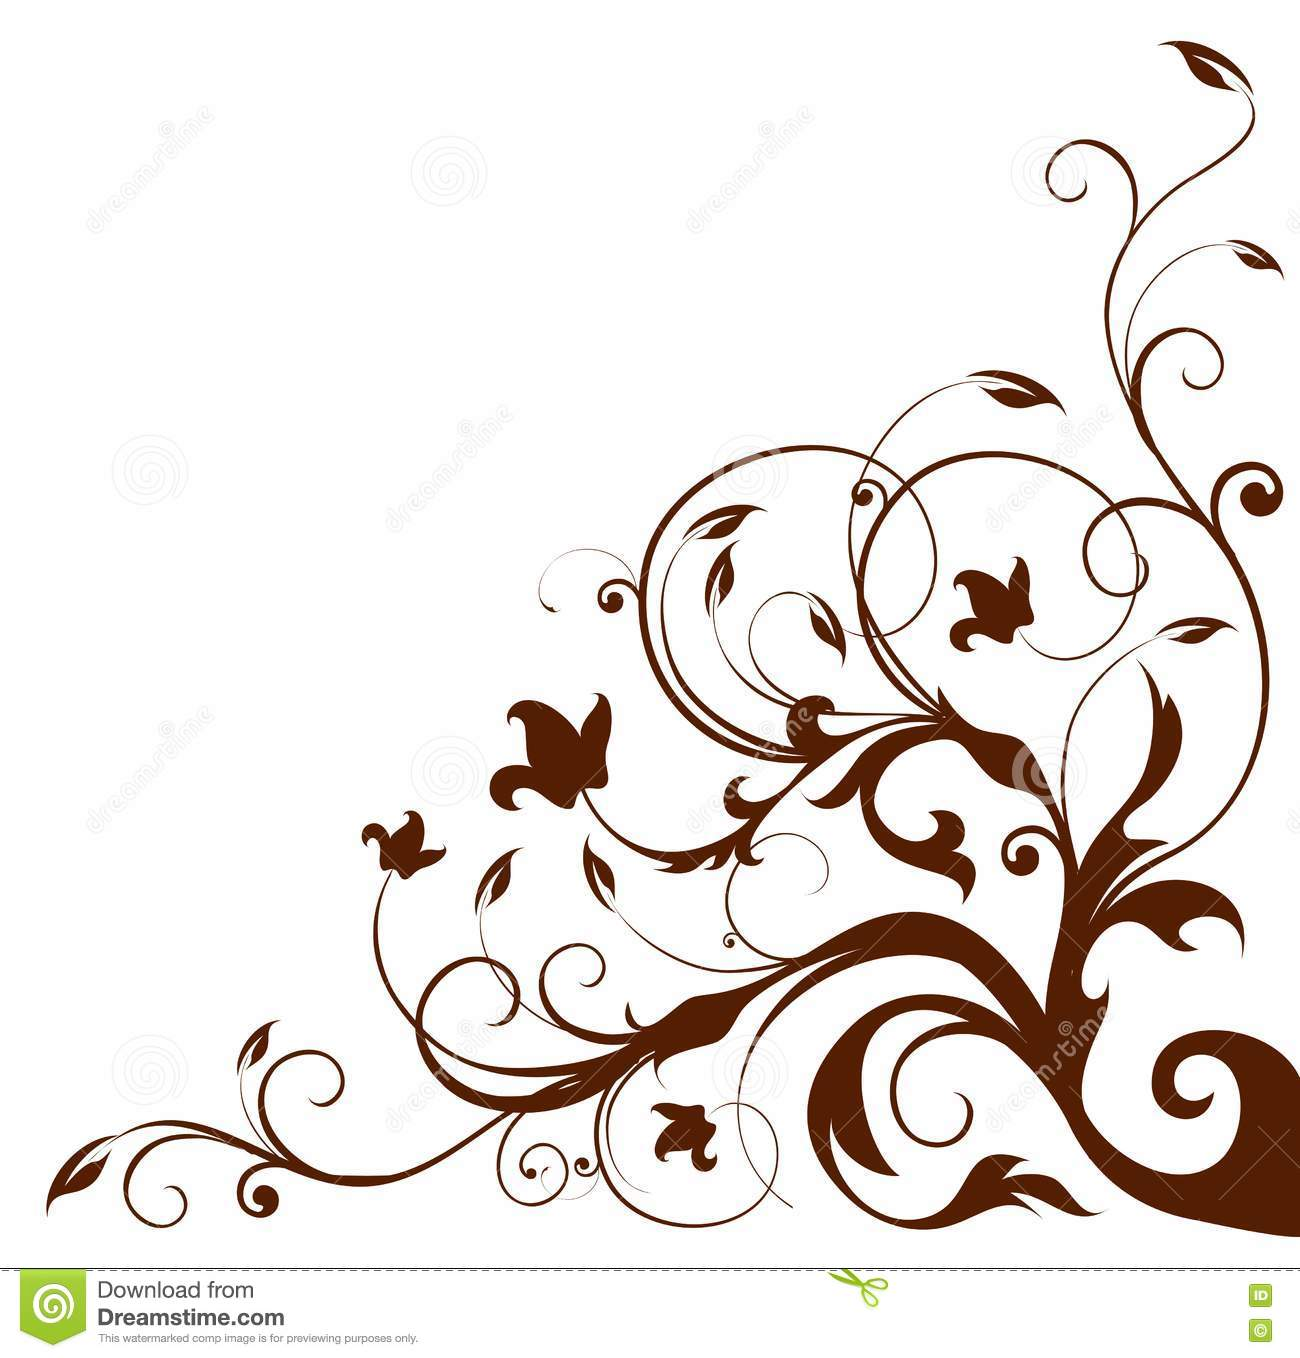 Black Flower And Vines Pattern Royalty Free Stock Image: Flower And Vines Pattern Royalty Free Stock Photos